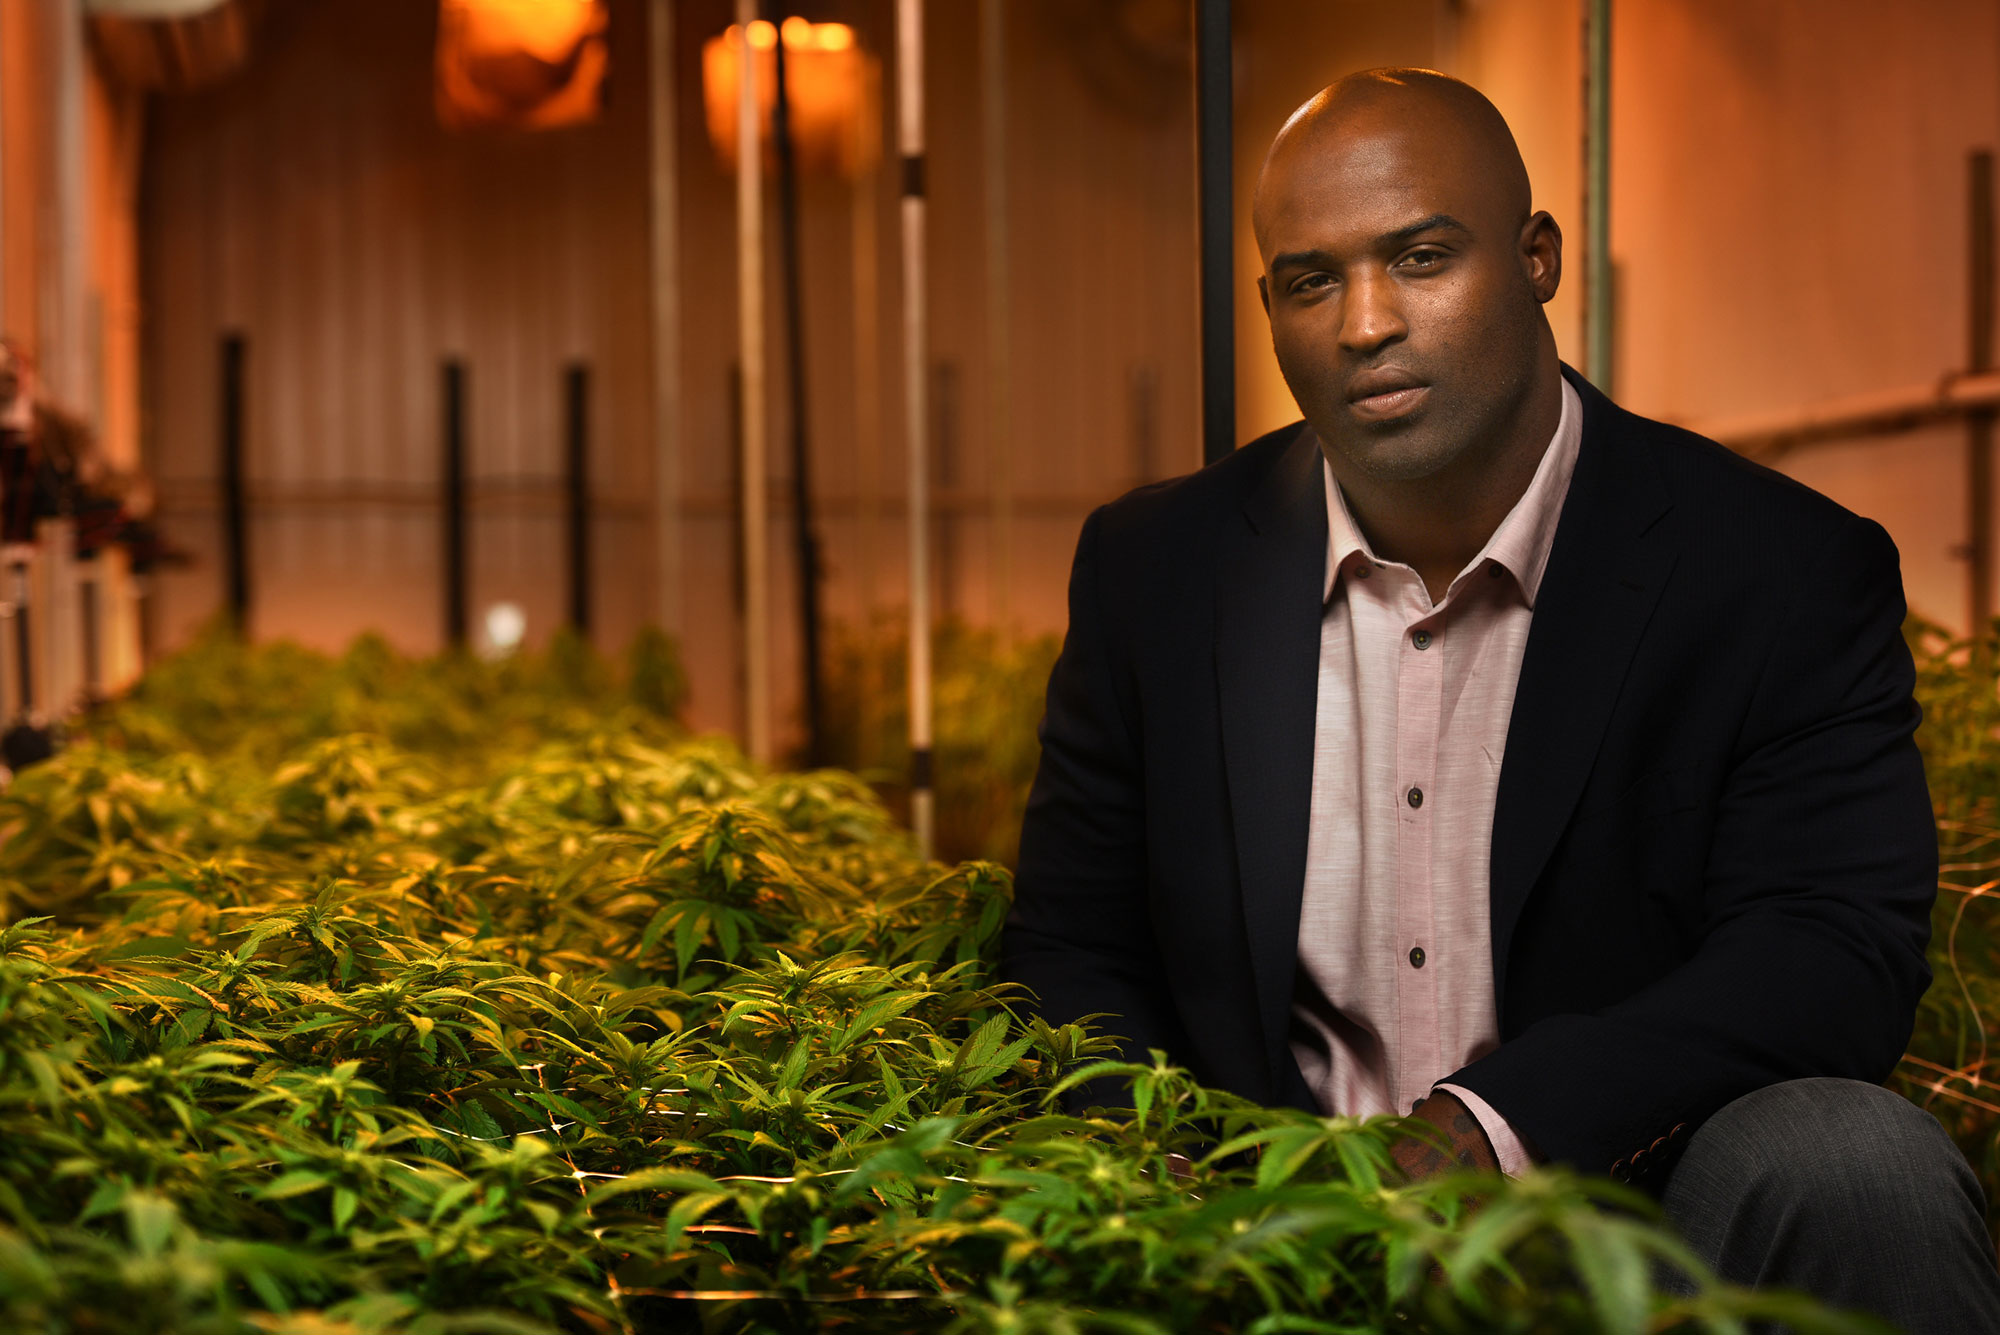 Ricky Williams Takes the High Road - A longform story I was able to design while reporting to the Web Director. You can visit the full site here.